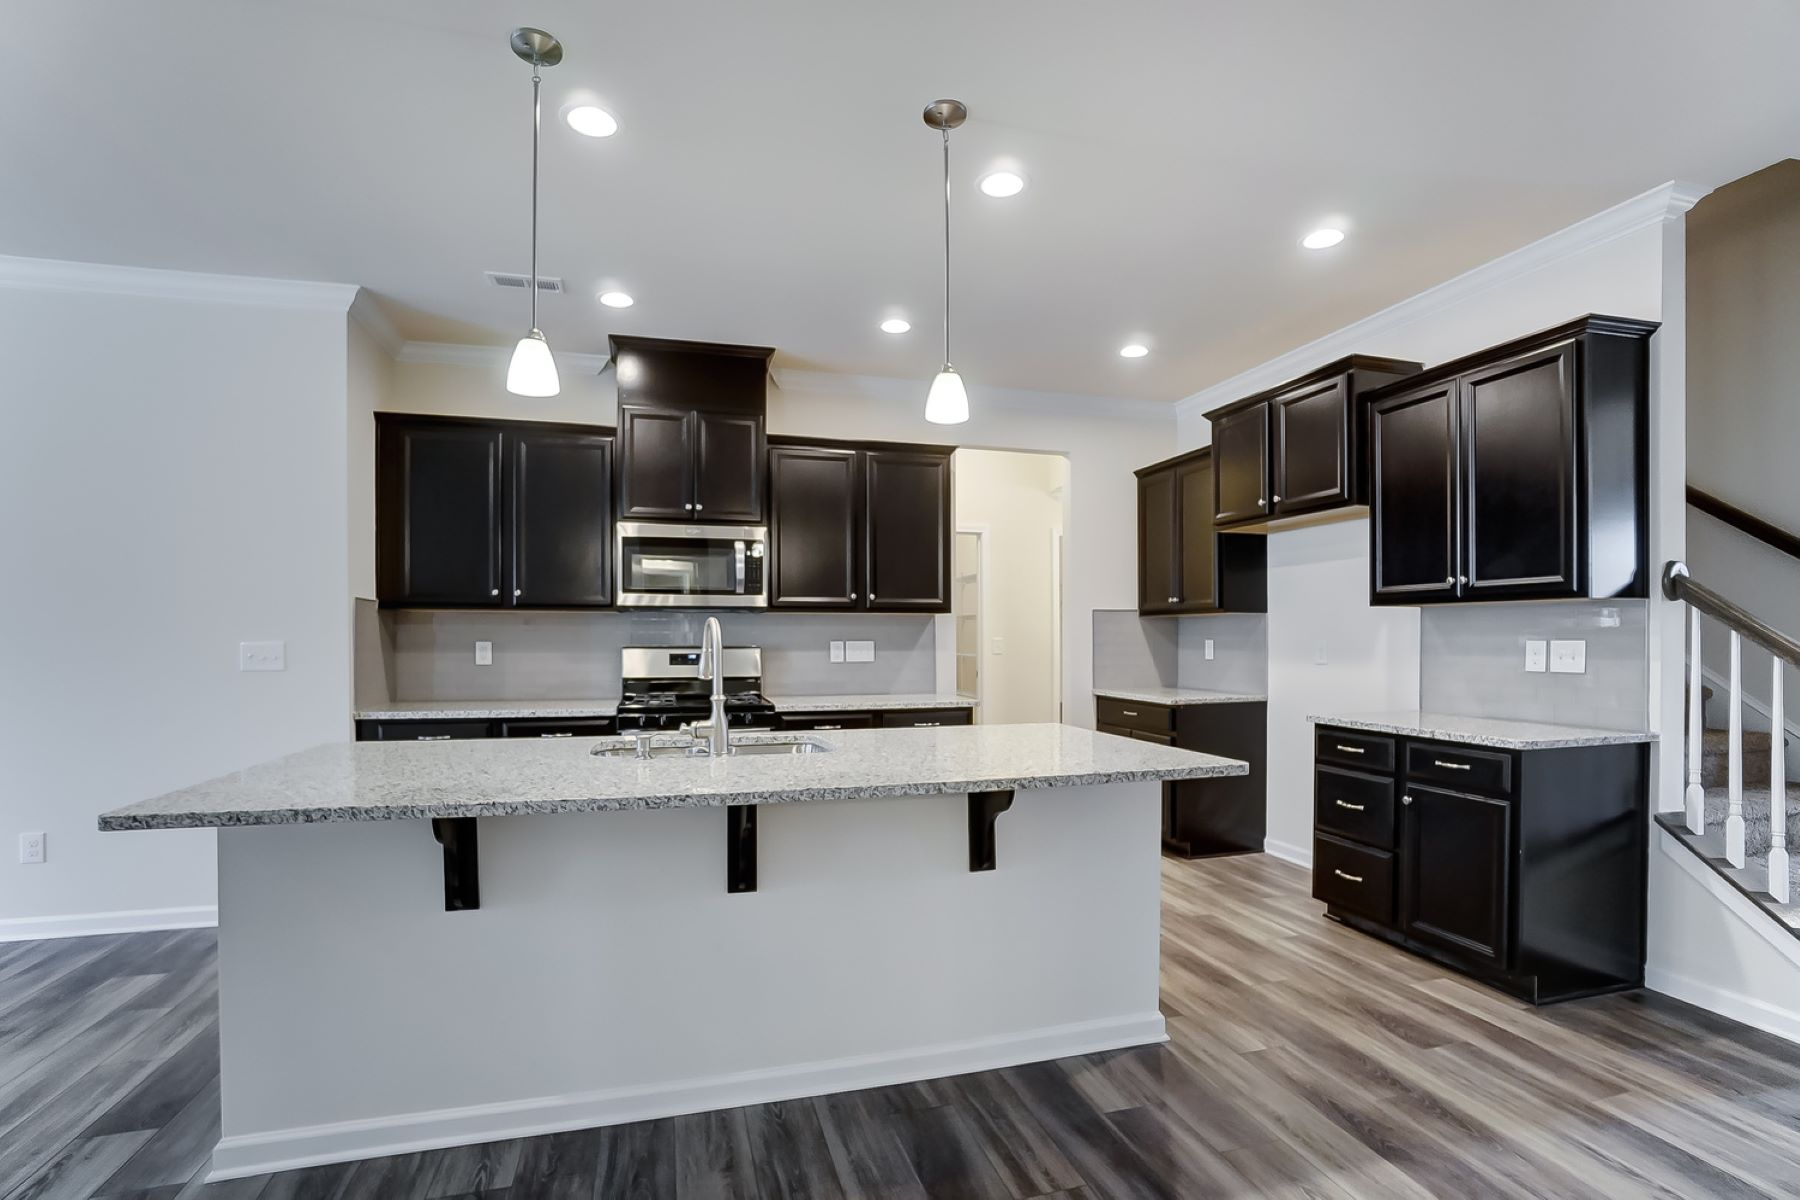 Evelyn Plan Kitchen at Braeburn in Indian Trail North Carolina by Mattamy Homes